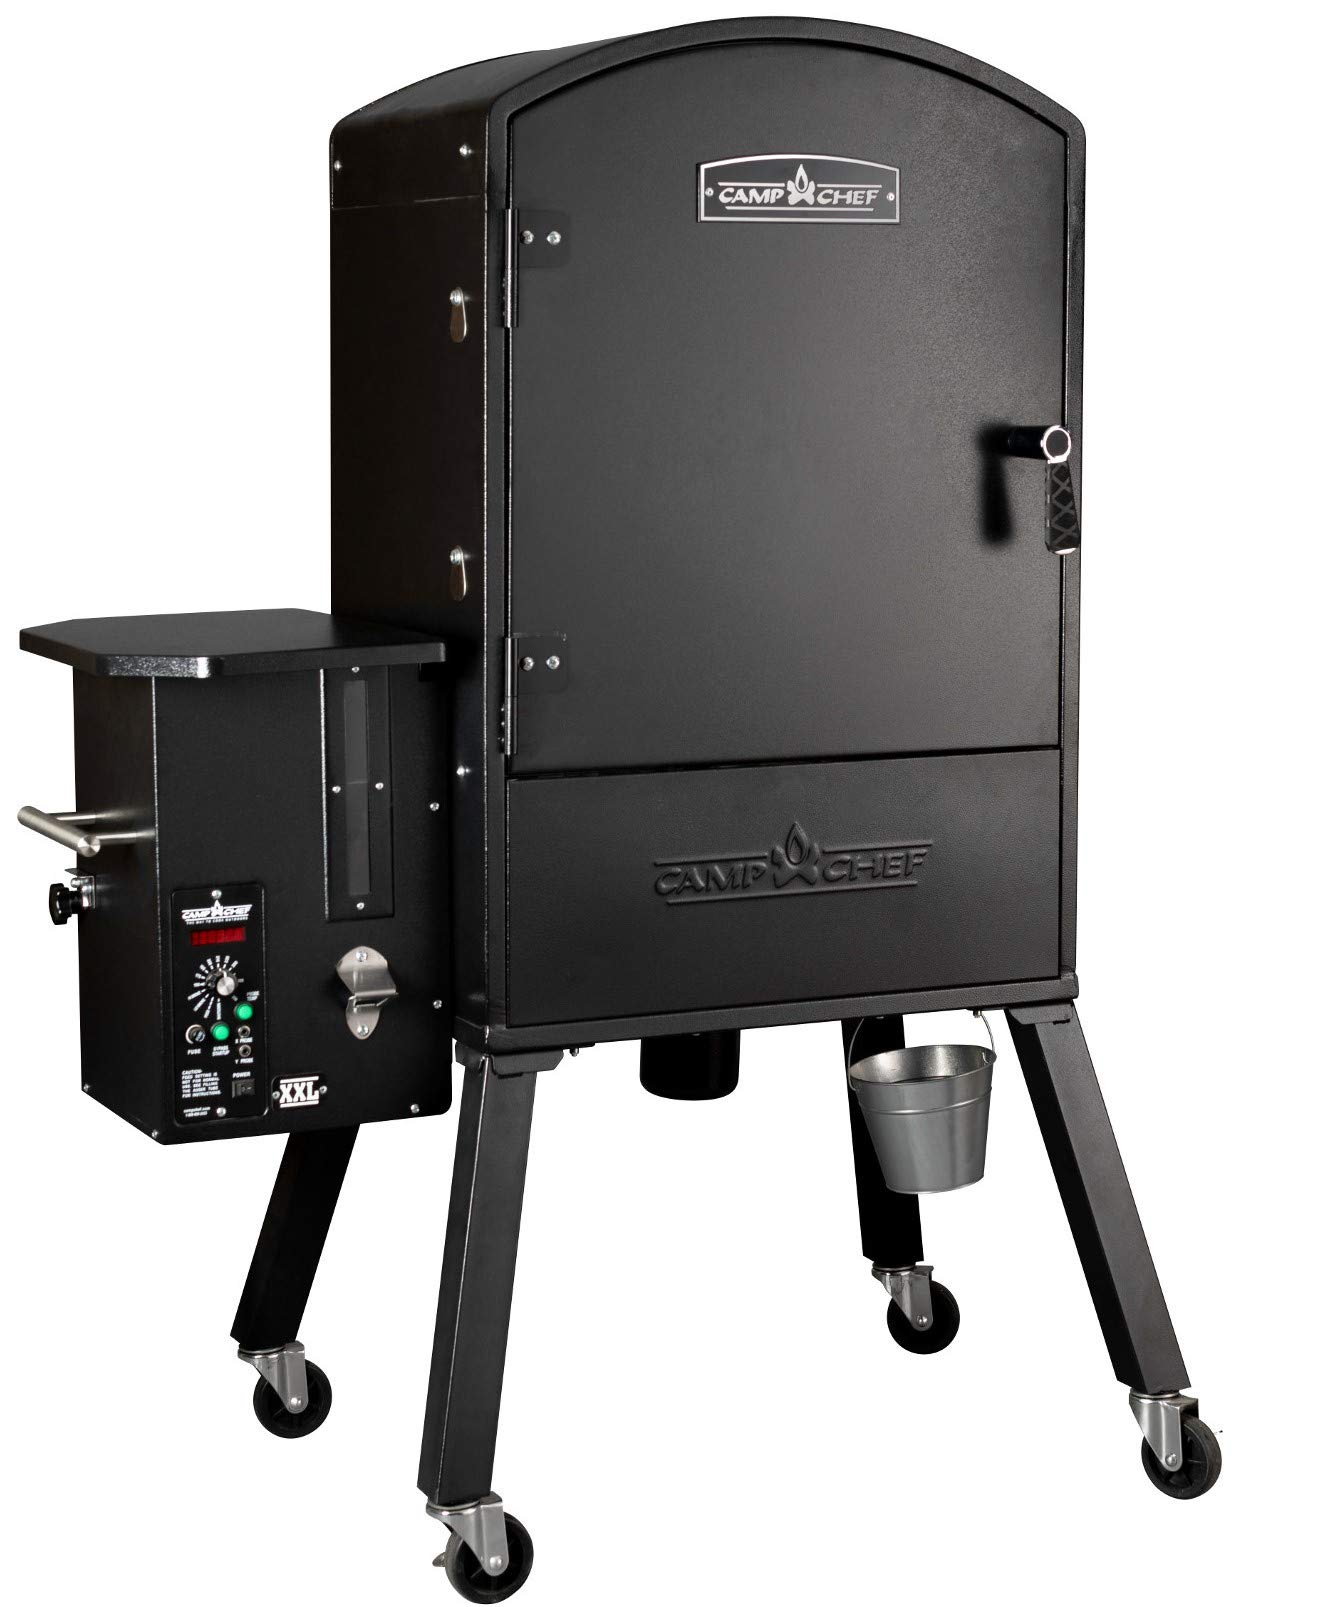 Camp Chef XXL Vertical Pellet Grill and Smoker (PGVXXL) - Smart Smoke Technology - Patented Ash Cleanout - Digital Display - Pellet Purge System by Camp Chef (Image #2)